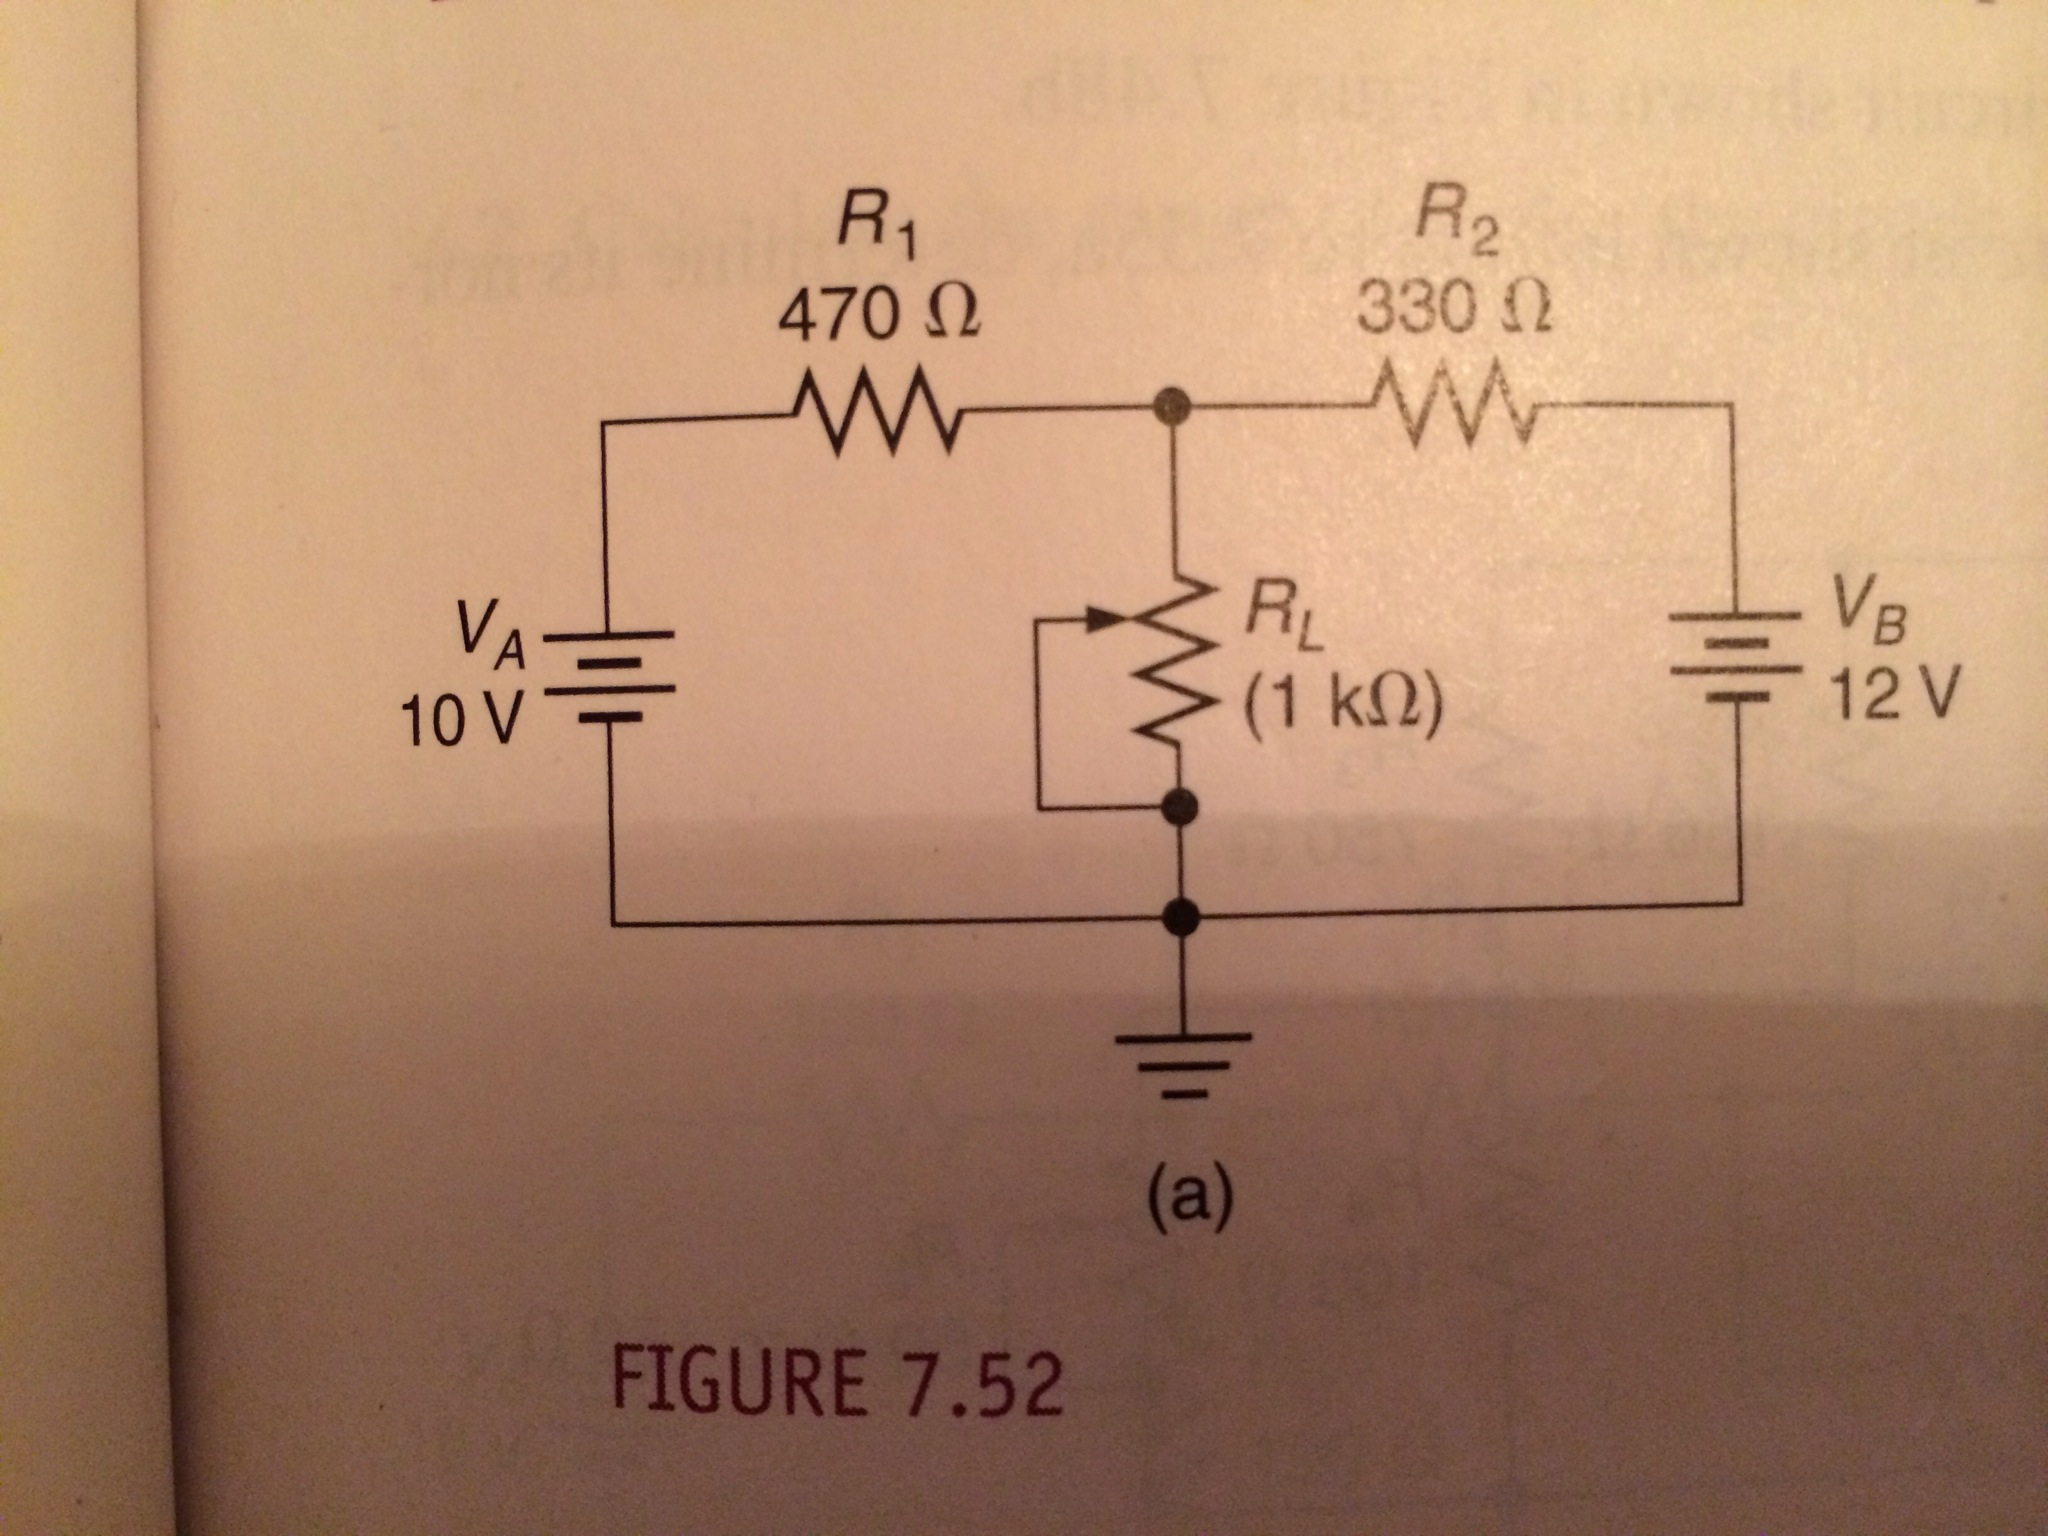 Calculate the maximum possible load power for the